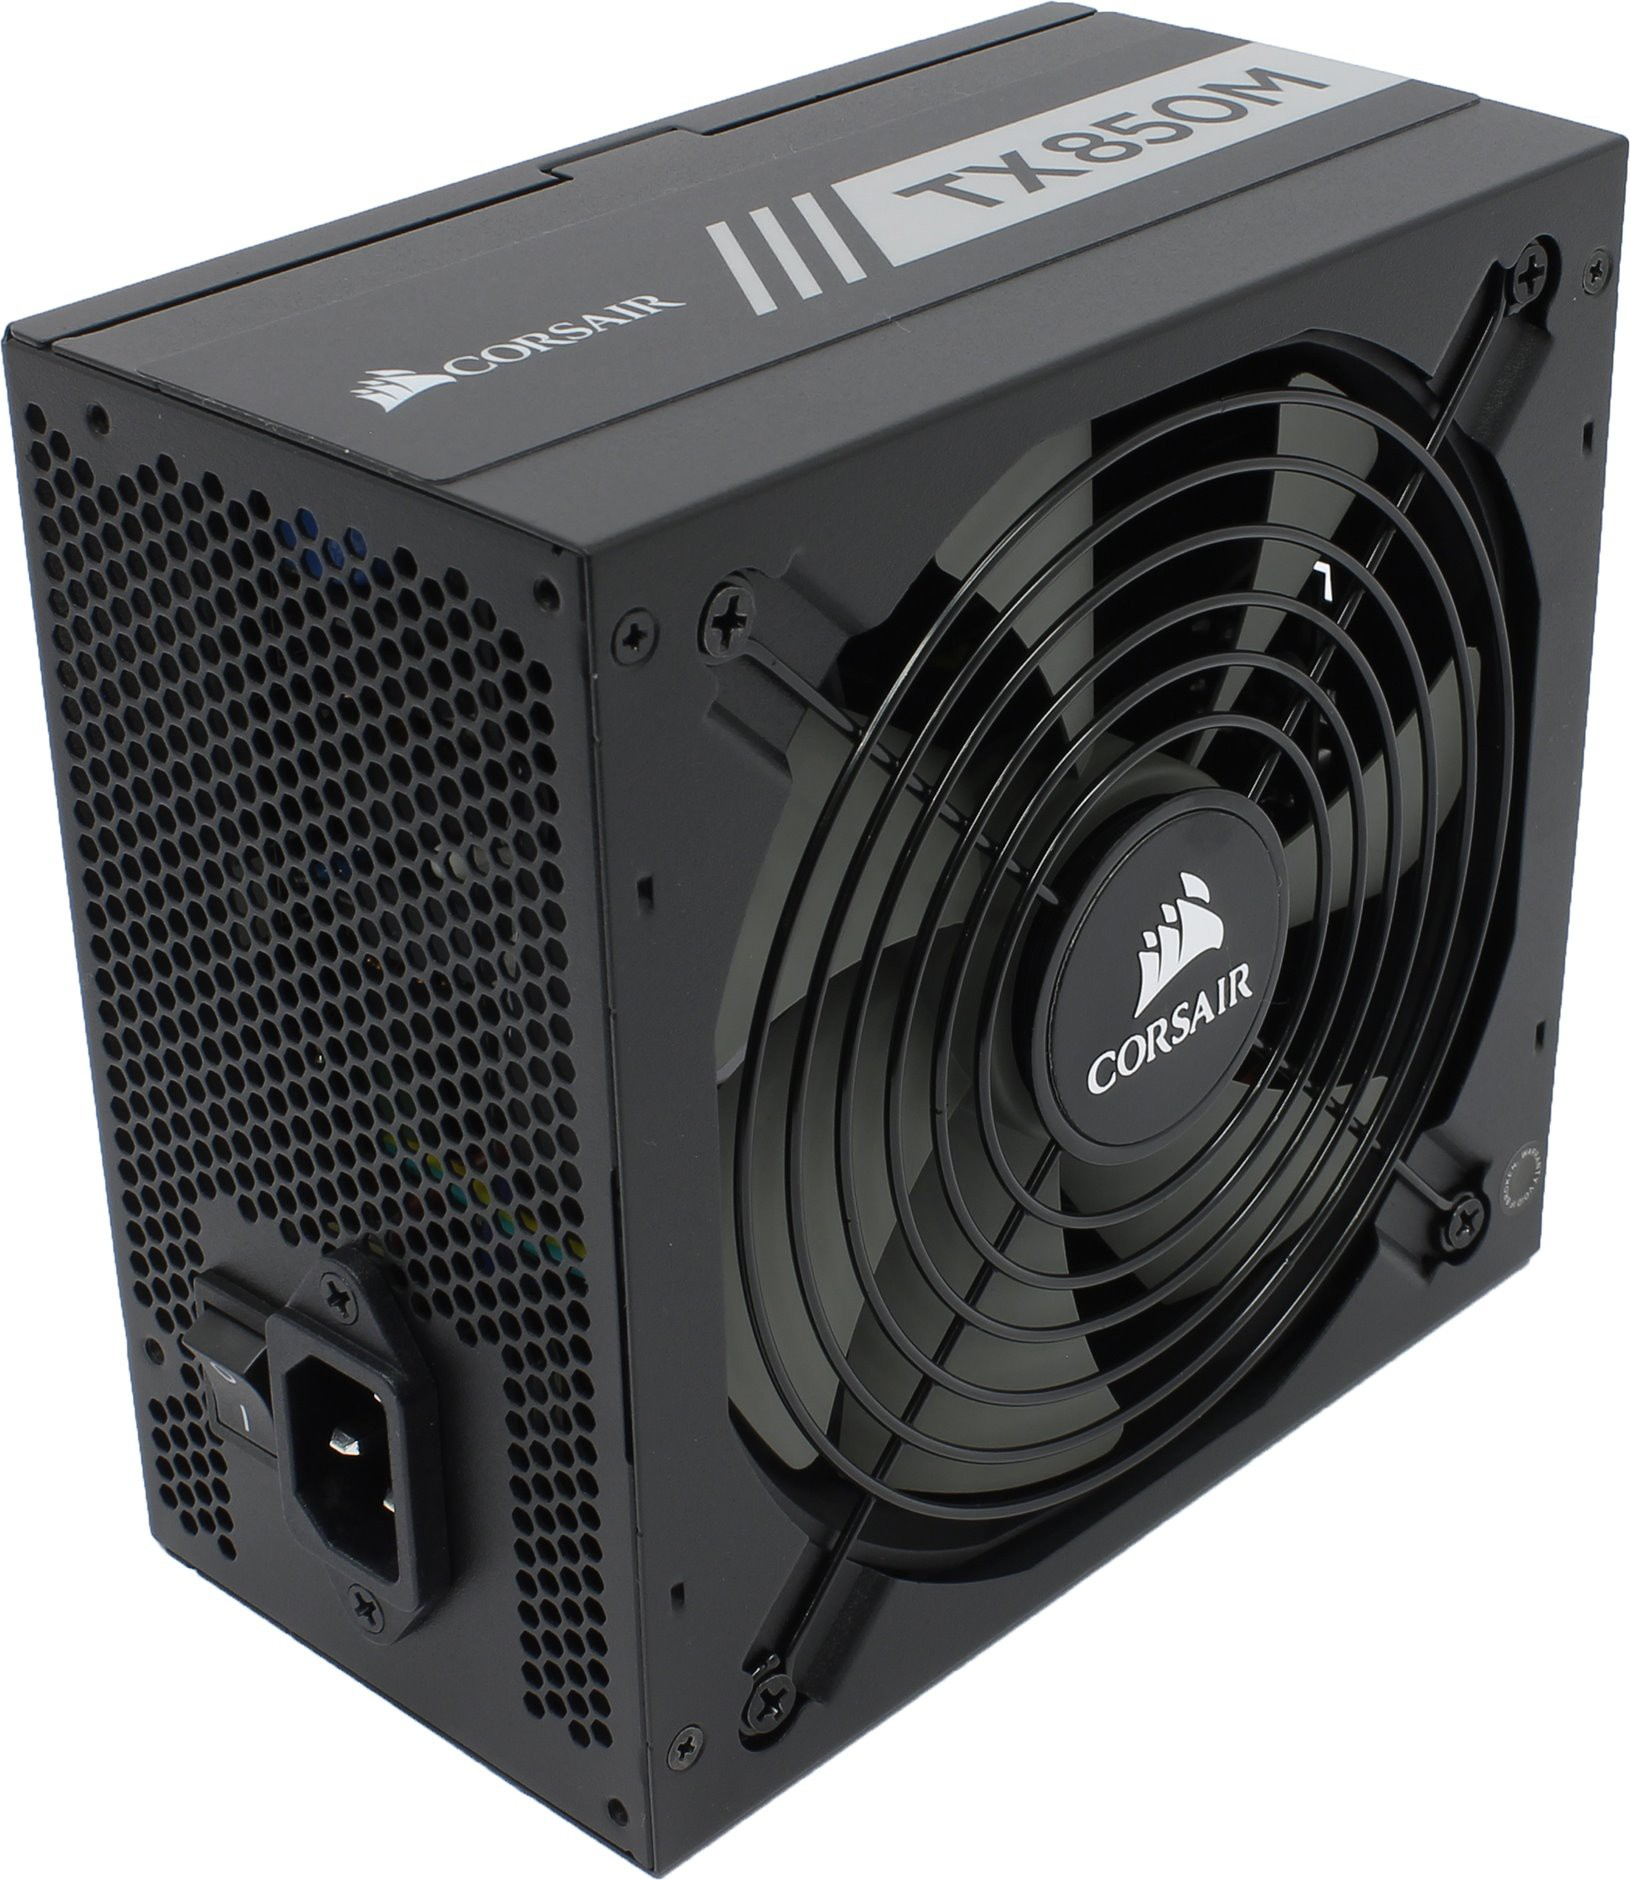 Блок питания 850W Corsair TX850M (CP-9020130-EU) (140mm, 24+8pin, 4x6/8-pin, 8xMolex, 8xSATA, 80+ Gold, Cable Management)